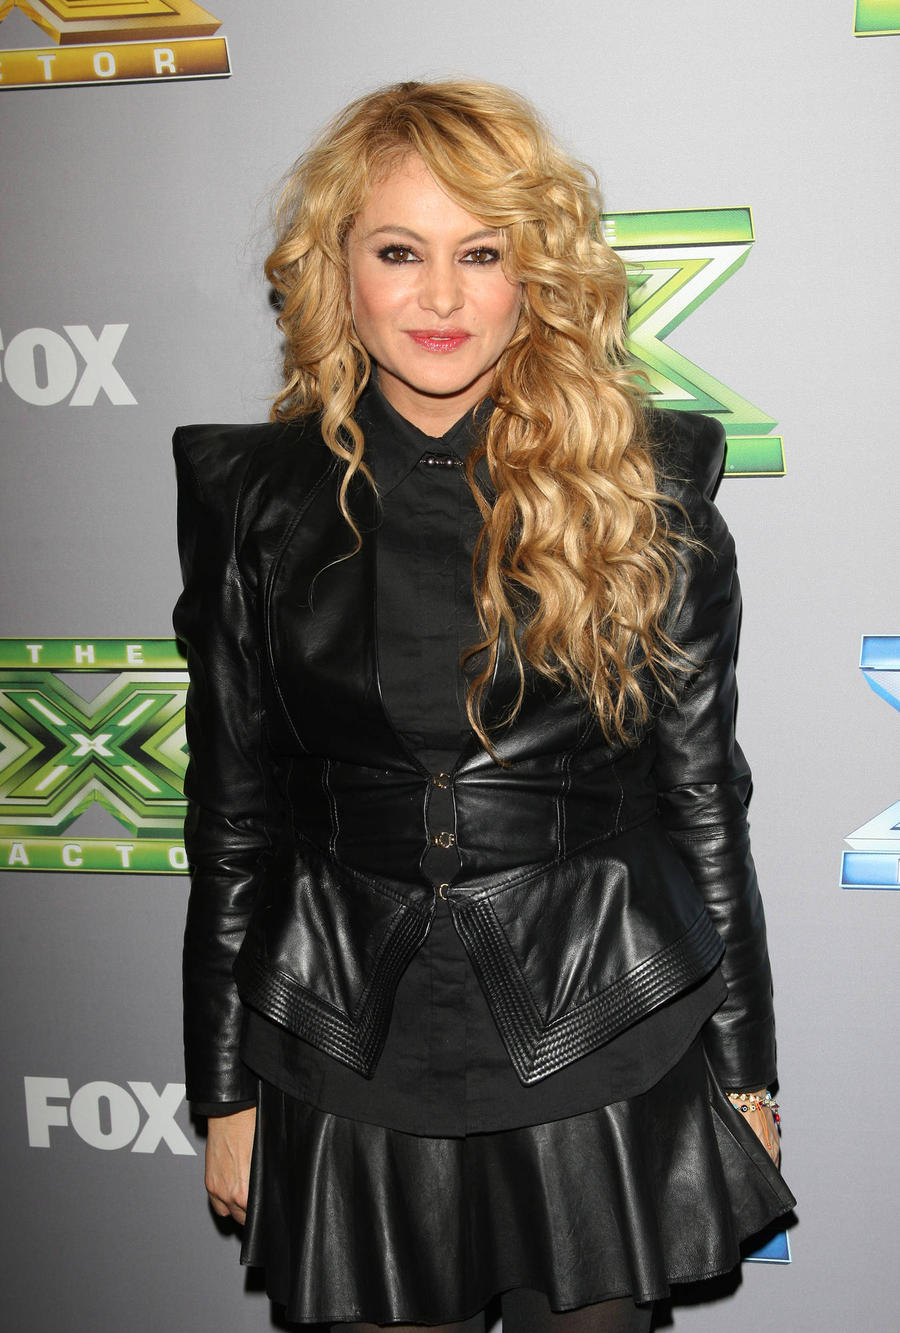 Paulina Rubio Introduces Fans To Son Eros